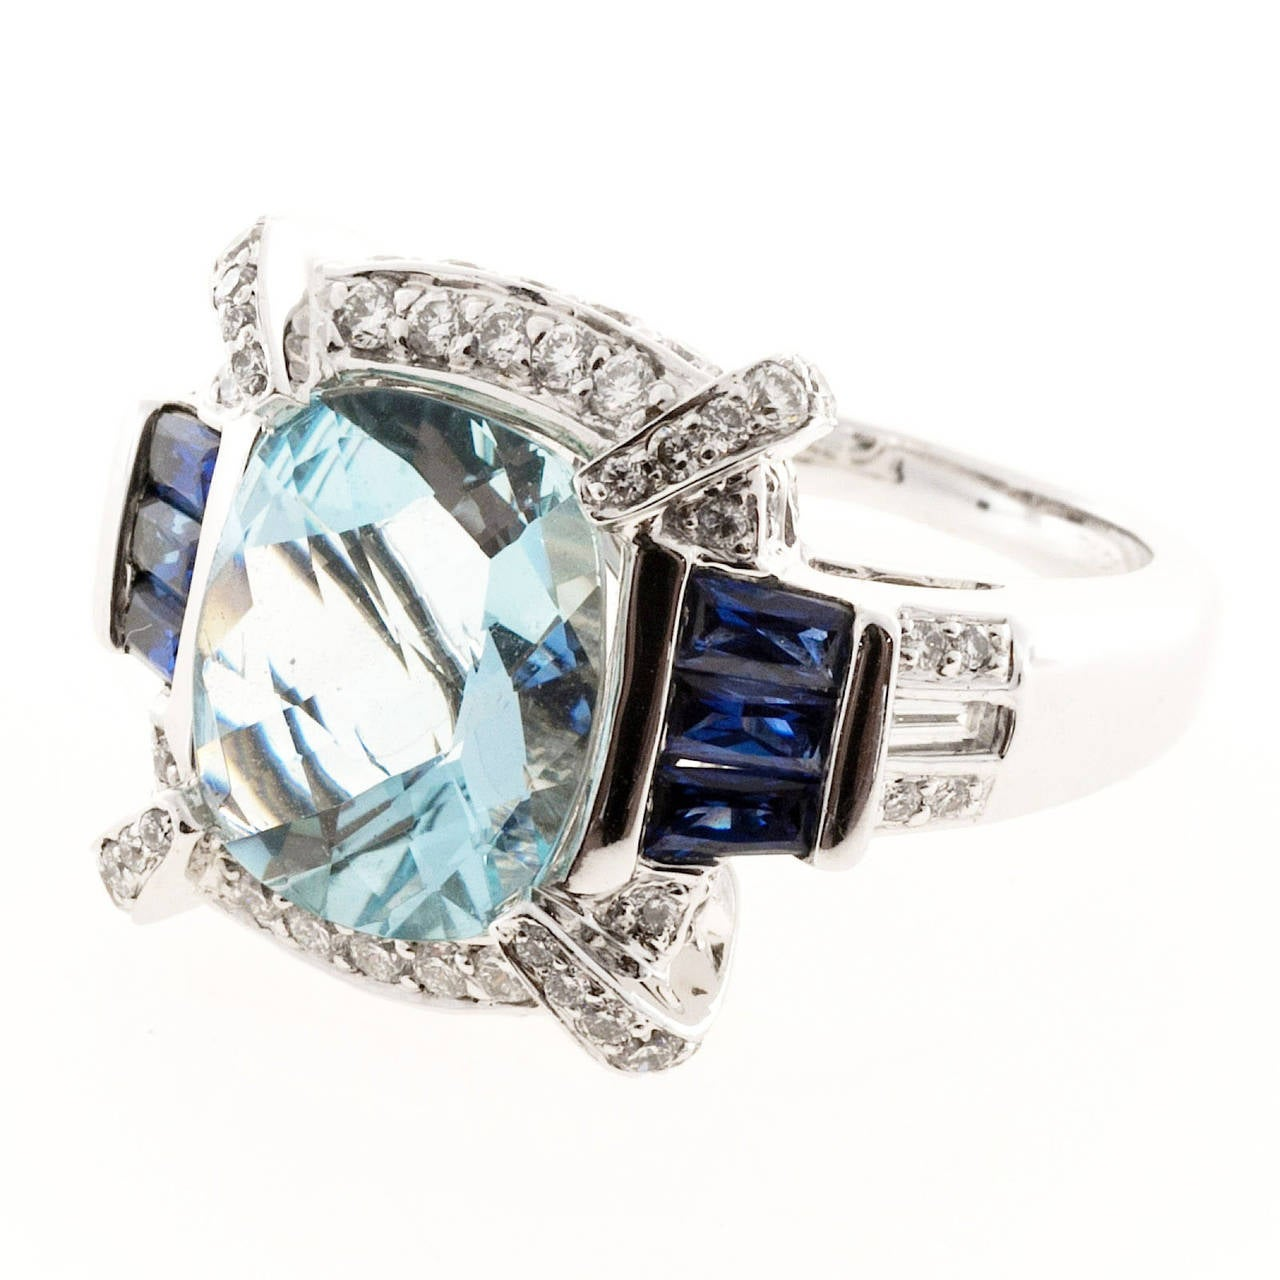 Authentic beautiful Charles Krypell solid 18k white gold ring with a genuine Aqua and fine blue Sapphires and top white full cut diamonds. Charles Krypell is known for bold designs and fine workmanship and stones.  1 cushion Aqua 12.5 x 10mm